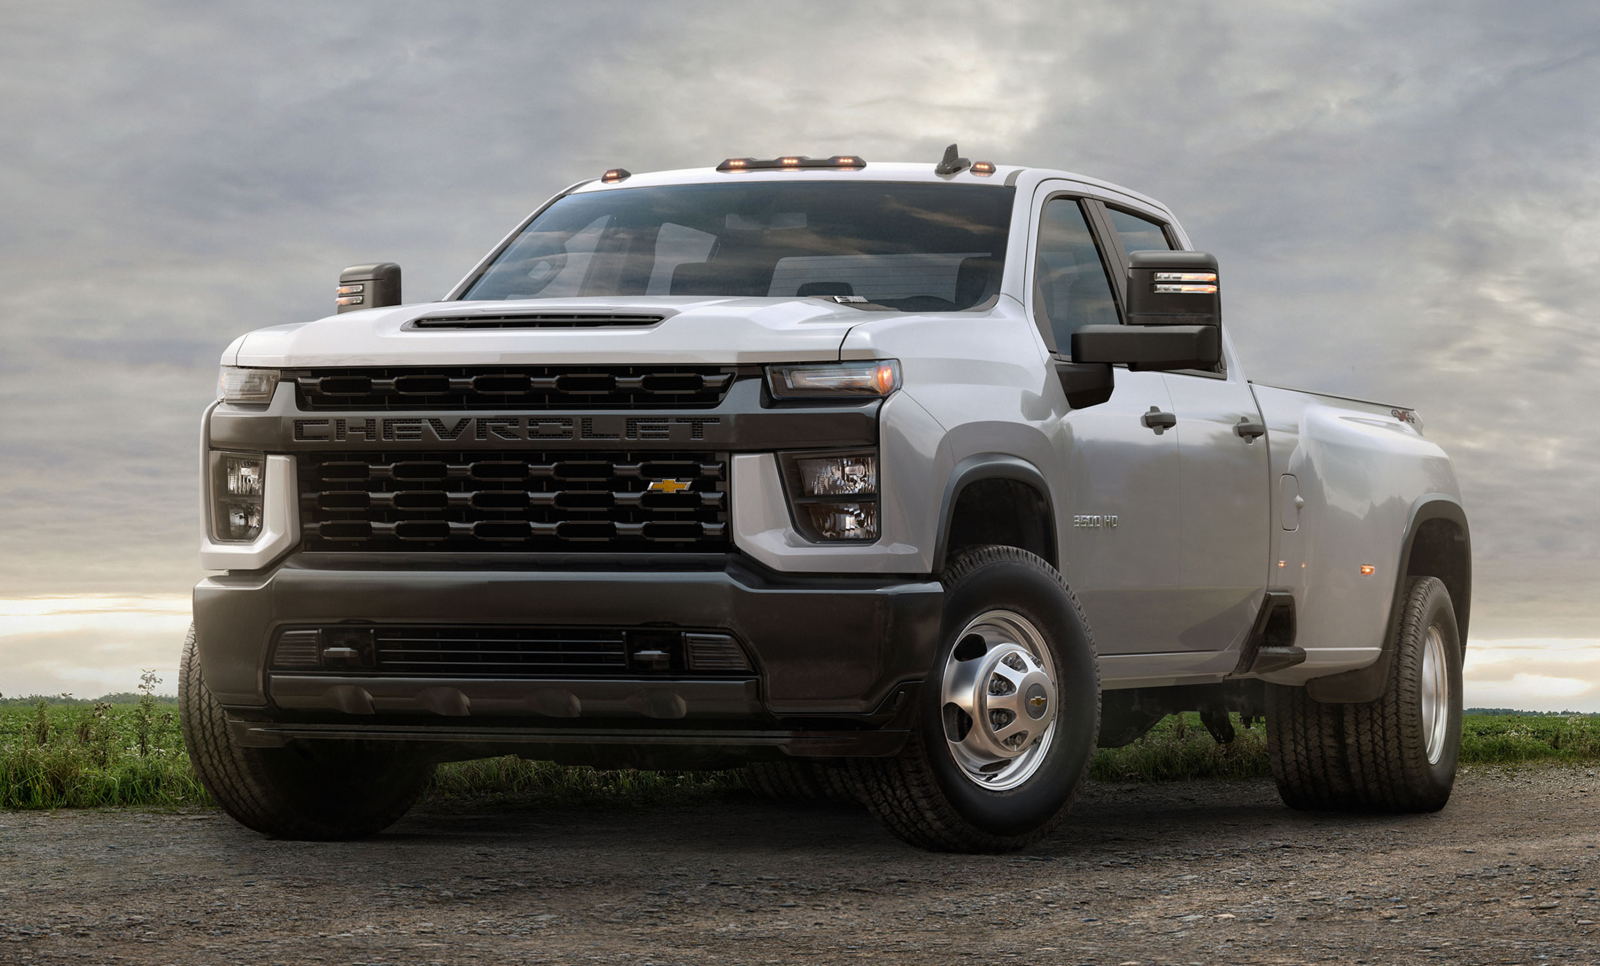 Used Chevrolet Silverado 3500hd For Sale Right Now Cargurus